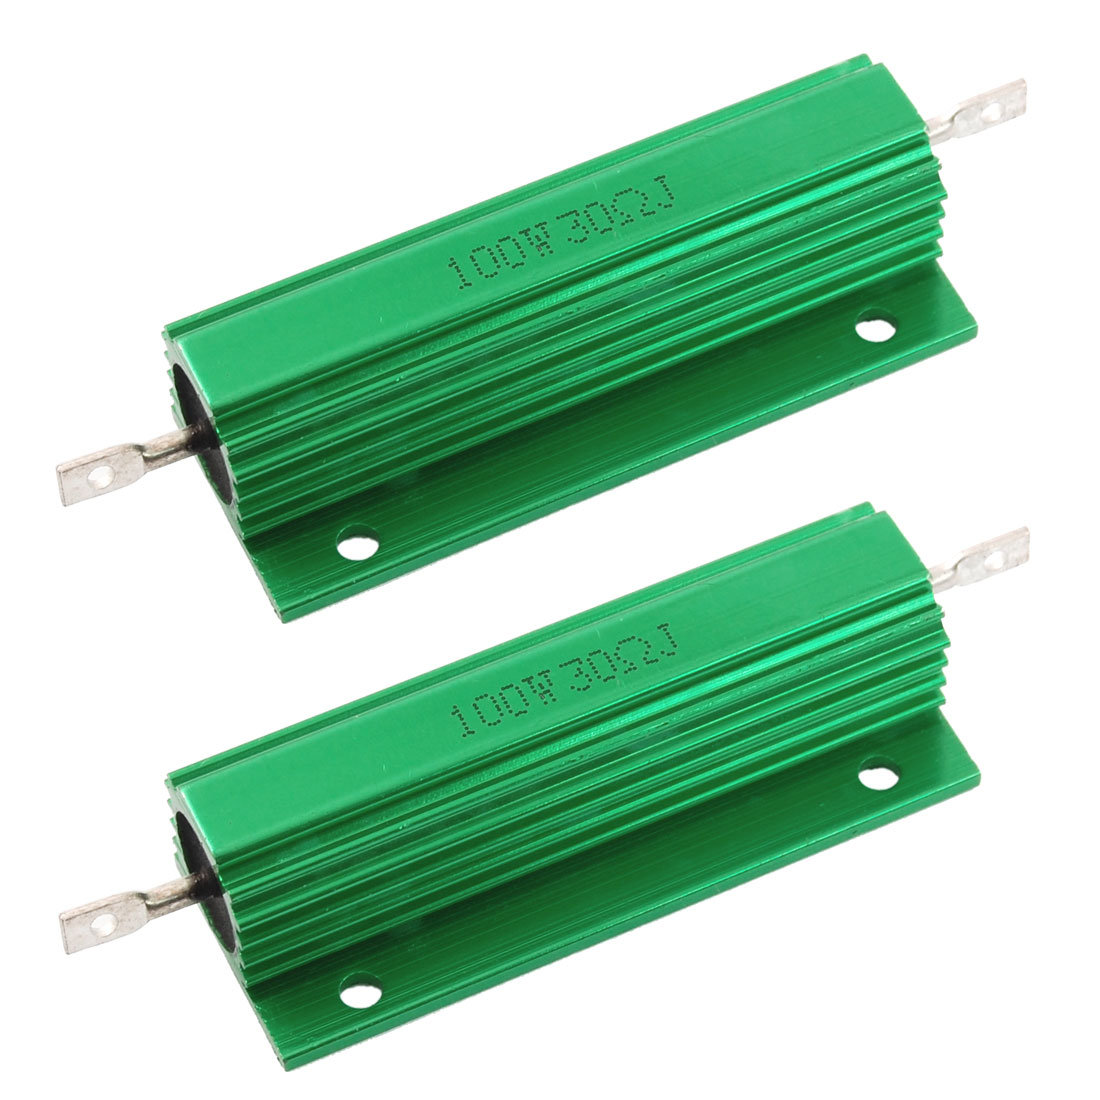 2 x Chassis Mounted 100W 30 Ohm 5% Aluminum Case Wirewound Resistors